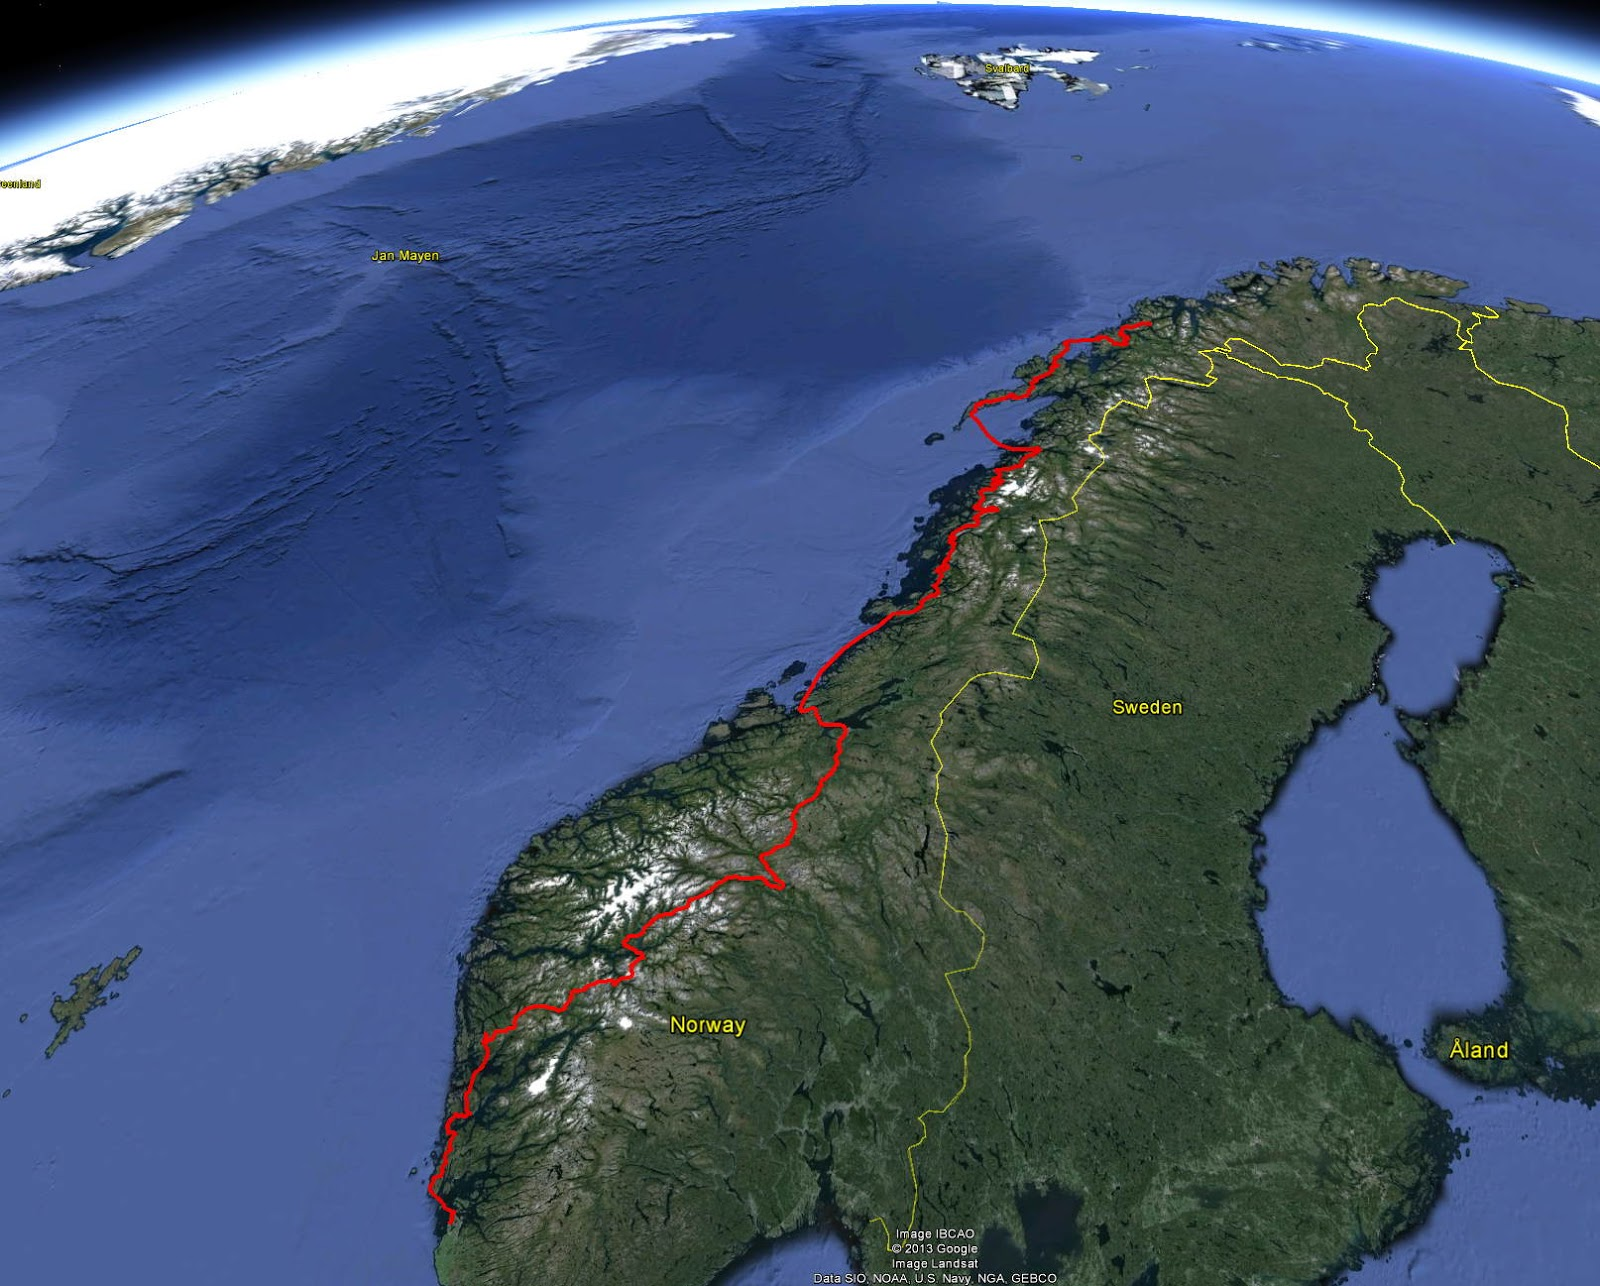 Decadence cycling the world gps files of our norway route gps file of our route for viewing in google earth kmz gumiabroncs Choice Image